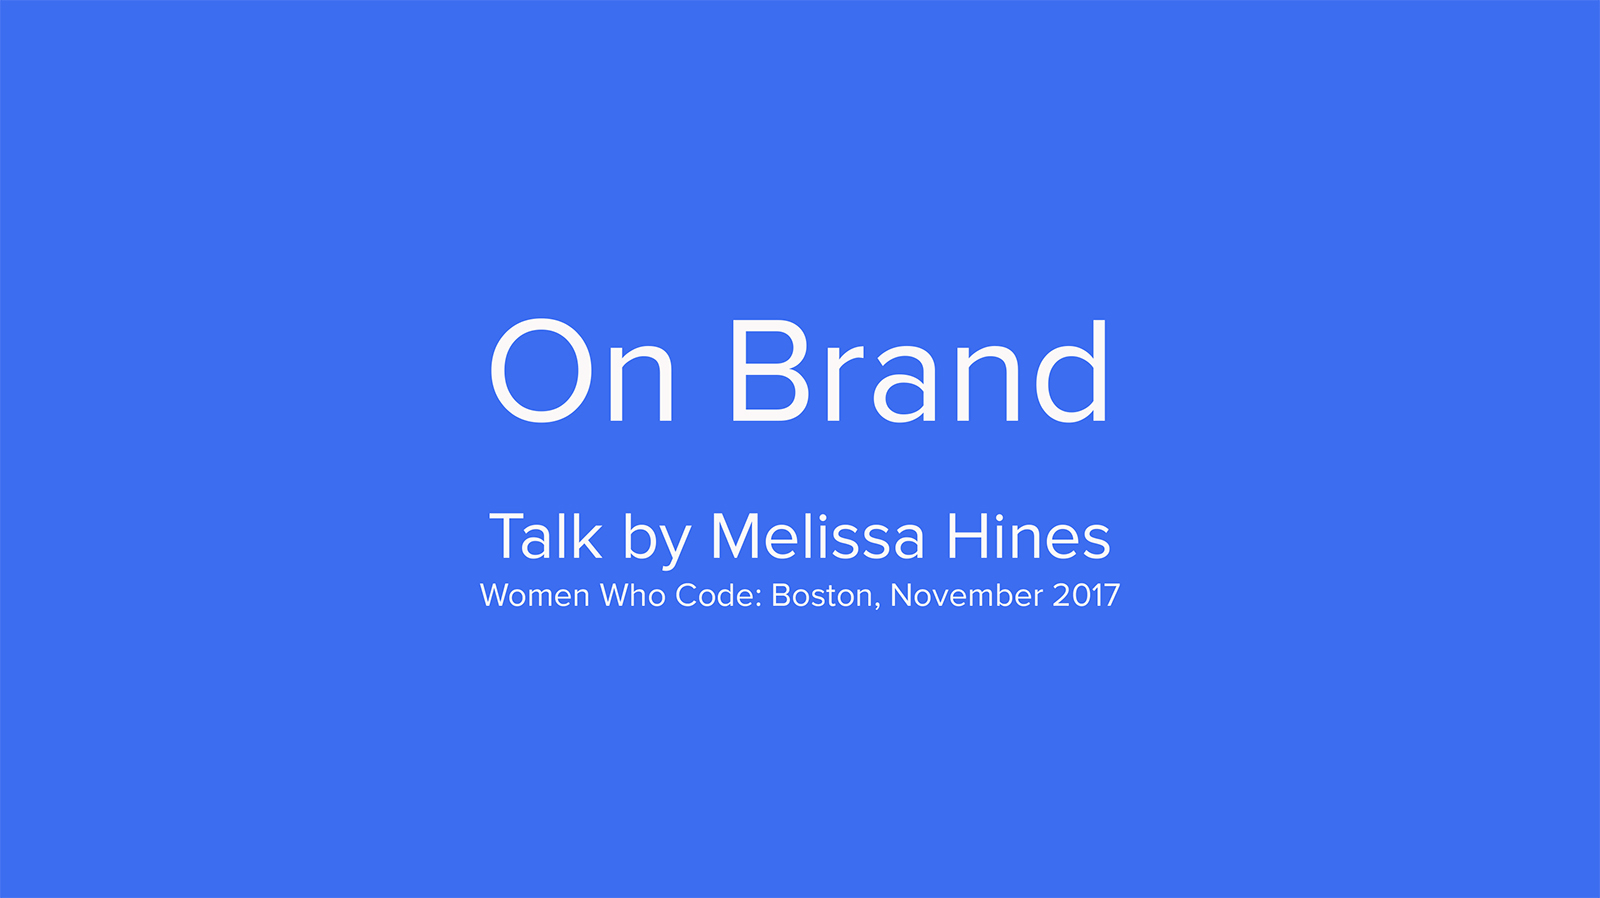 On Brand Design Talk Cover